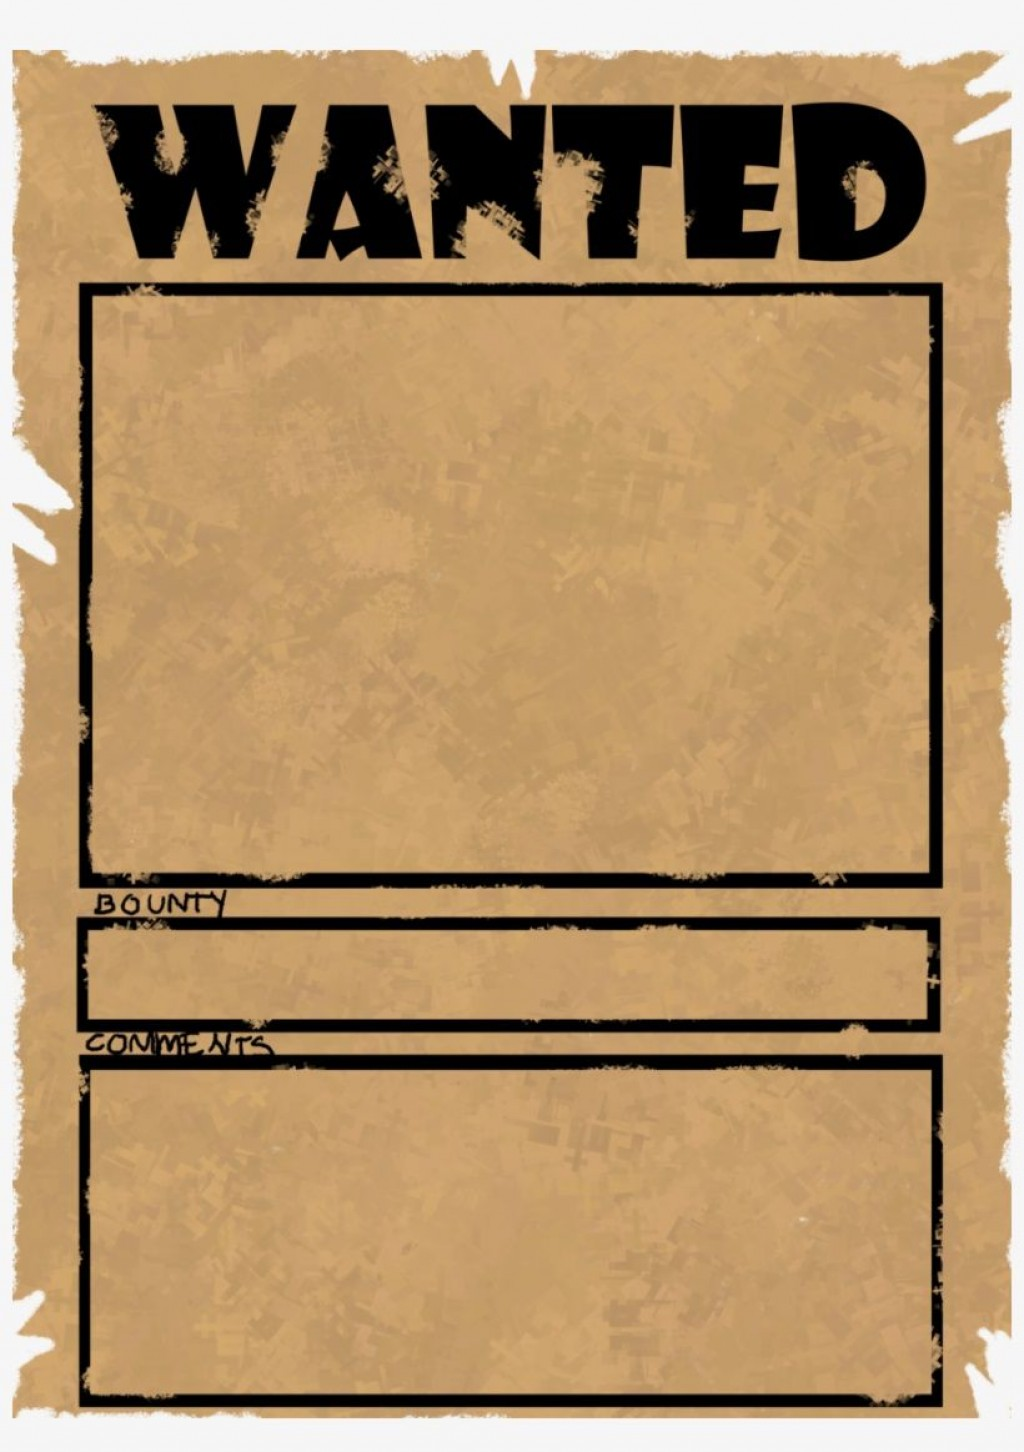 002 Imposing Wanted Poster Template Microsoft Word High Resolution  Western MostLarge